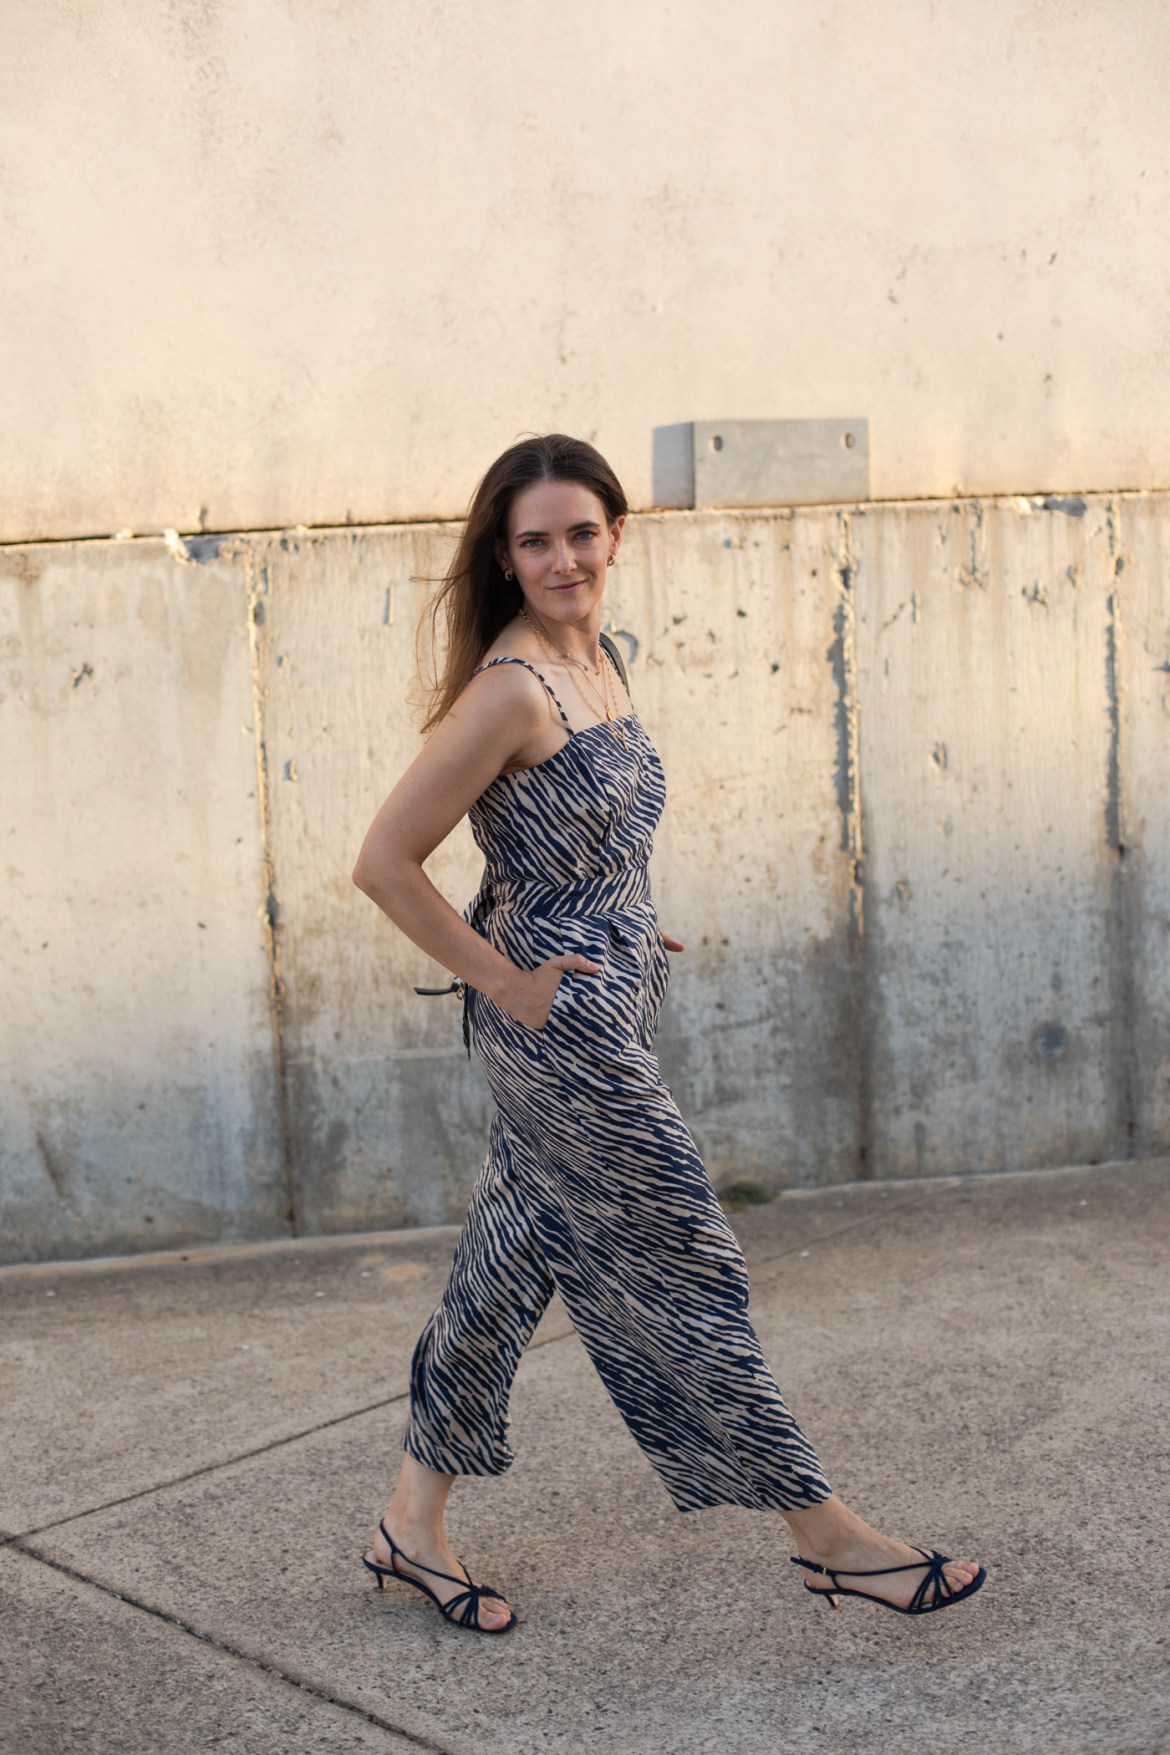 zebra print outfit idea from Boden Clothing